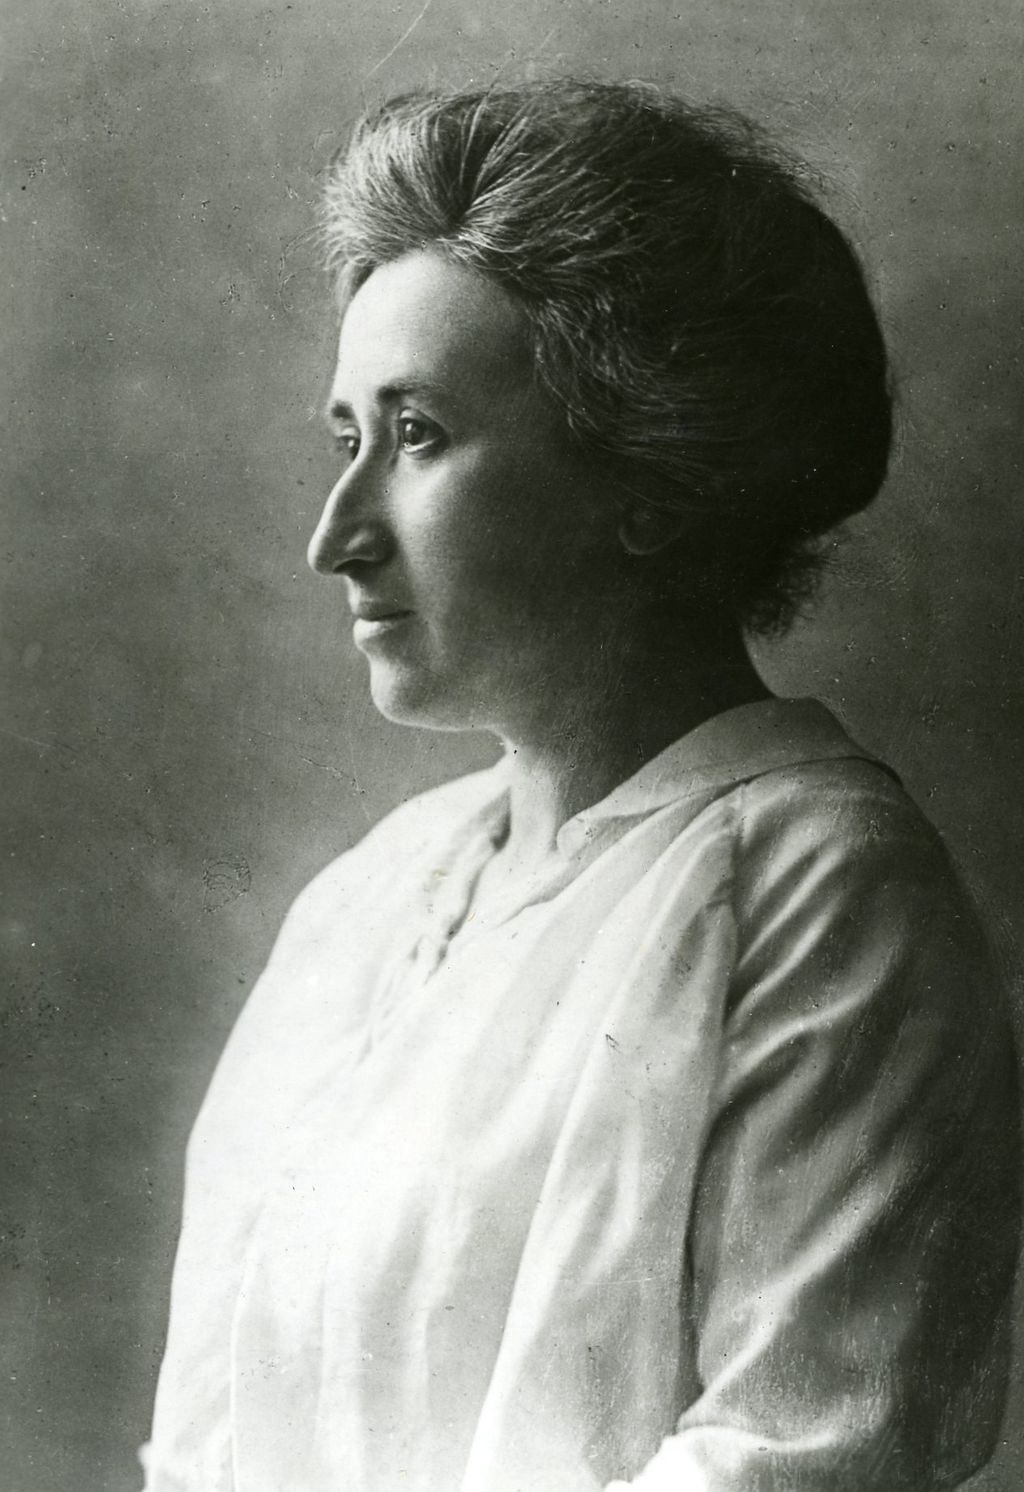 A black-and-white image of Rosa Luxemburg looking toward the left edge of the frame.